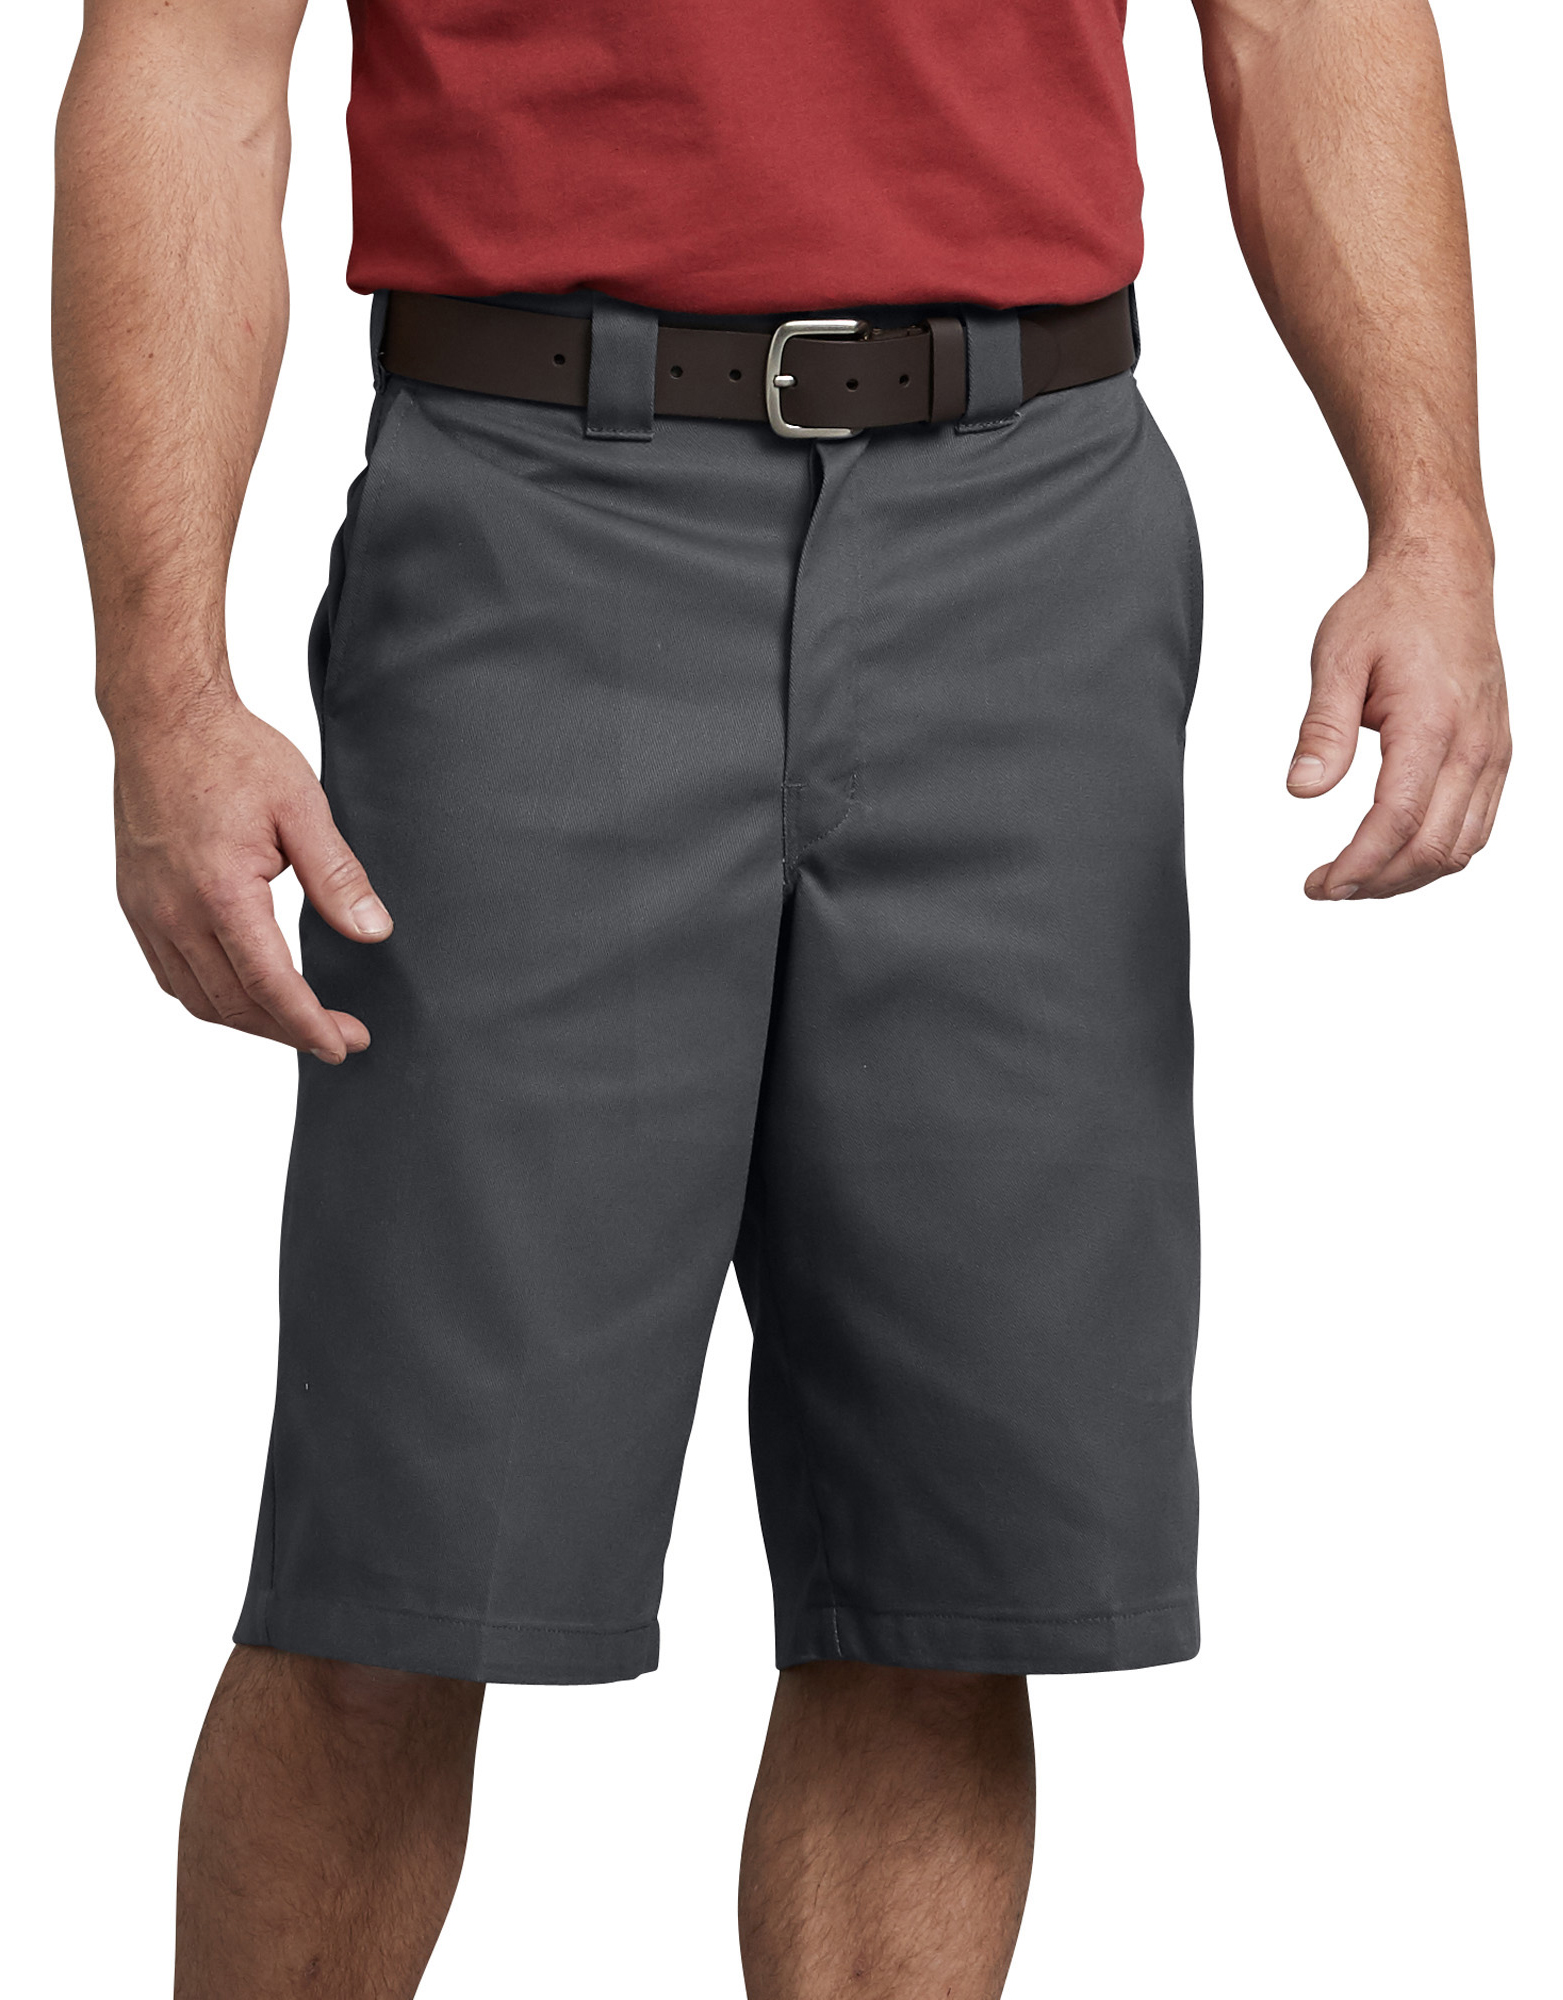 "FLEX 13"" Loose Fit Multi-Use Pocket Work Shorts - Charcoal Gray (CH)"